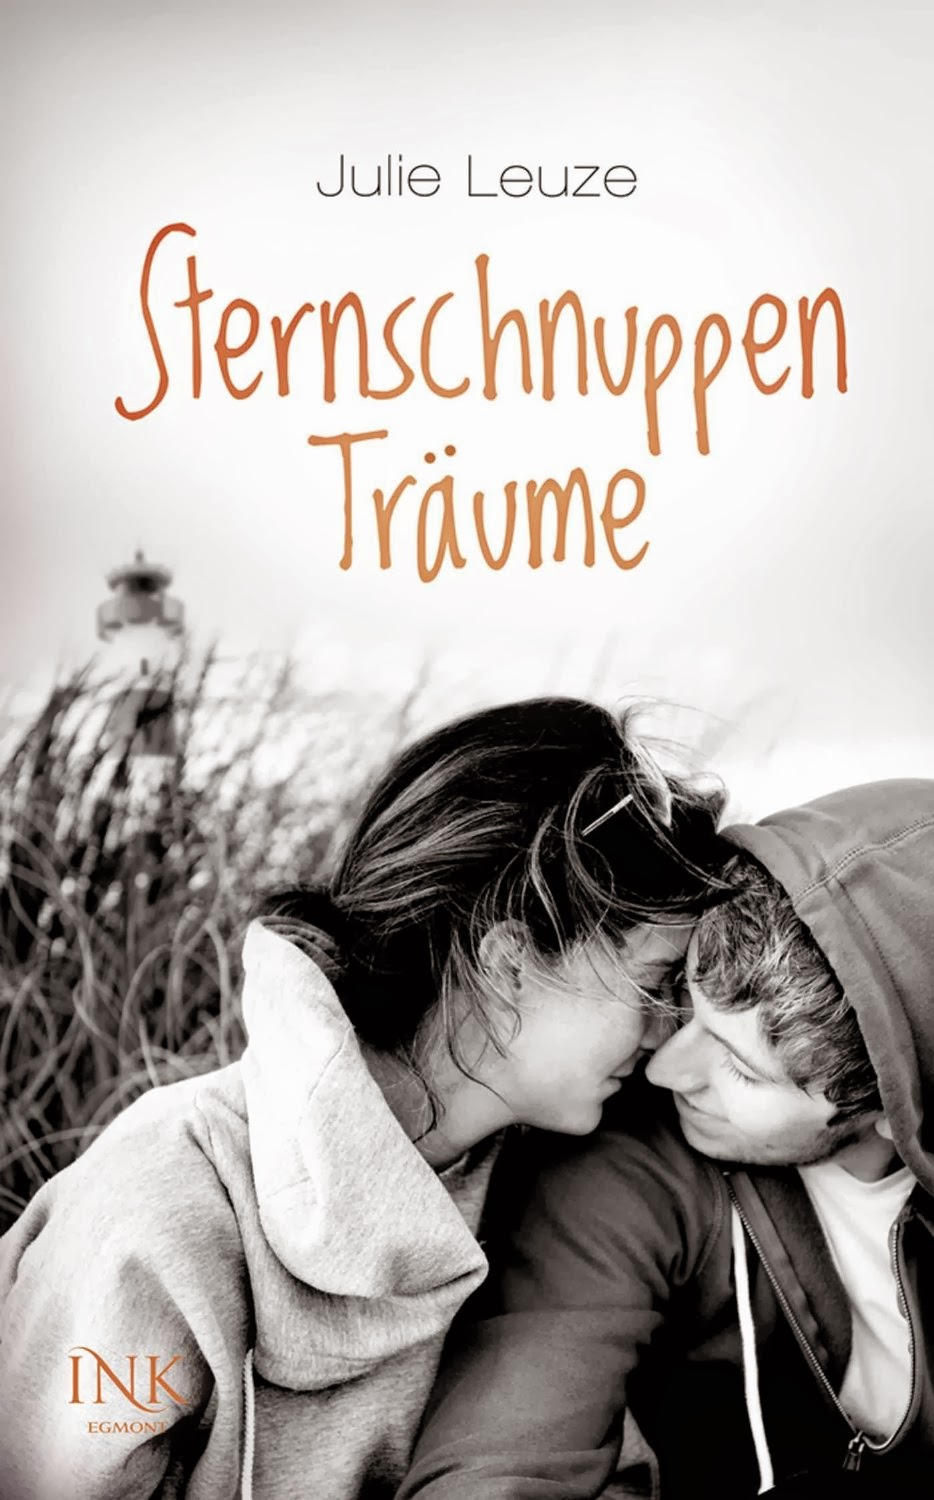 http://www.amazon.de/Sternschnuppentr%C3%A4ume-Julie-Leuze/dp/3863960653/ref=wl_it_dp_o_pC_nS_nC?ie=UTF8&colid=MF80ALH12BCL&coliid=I3C5IV05GSQ10Y